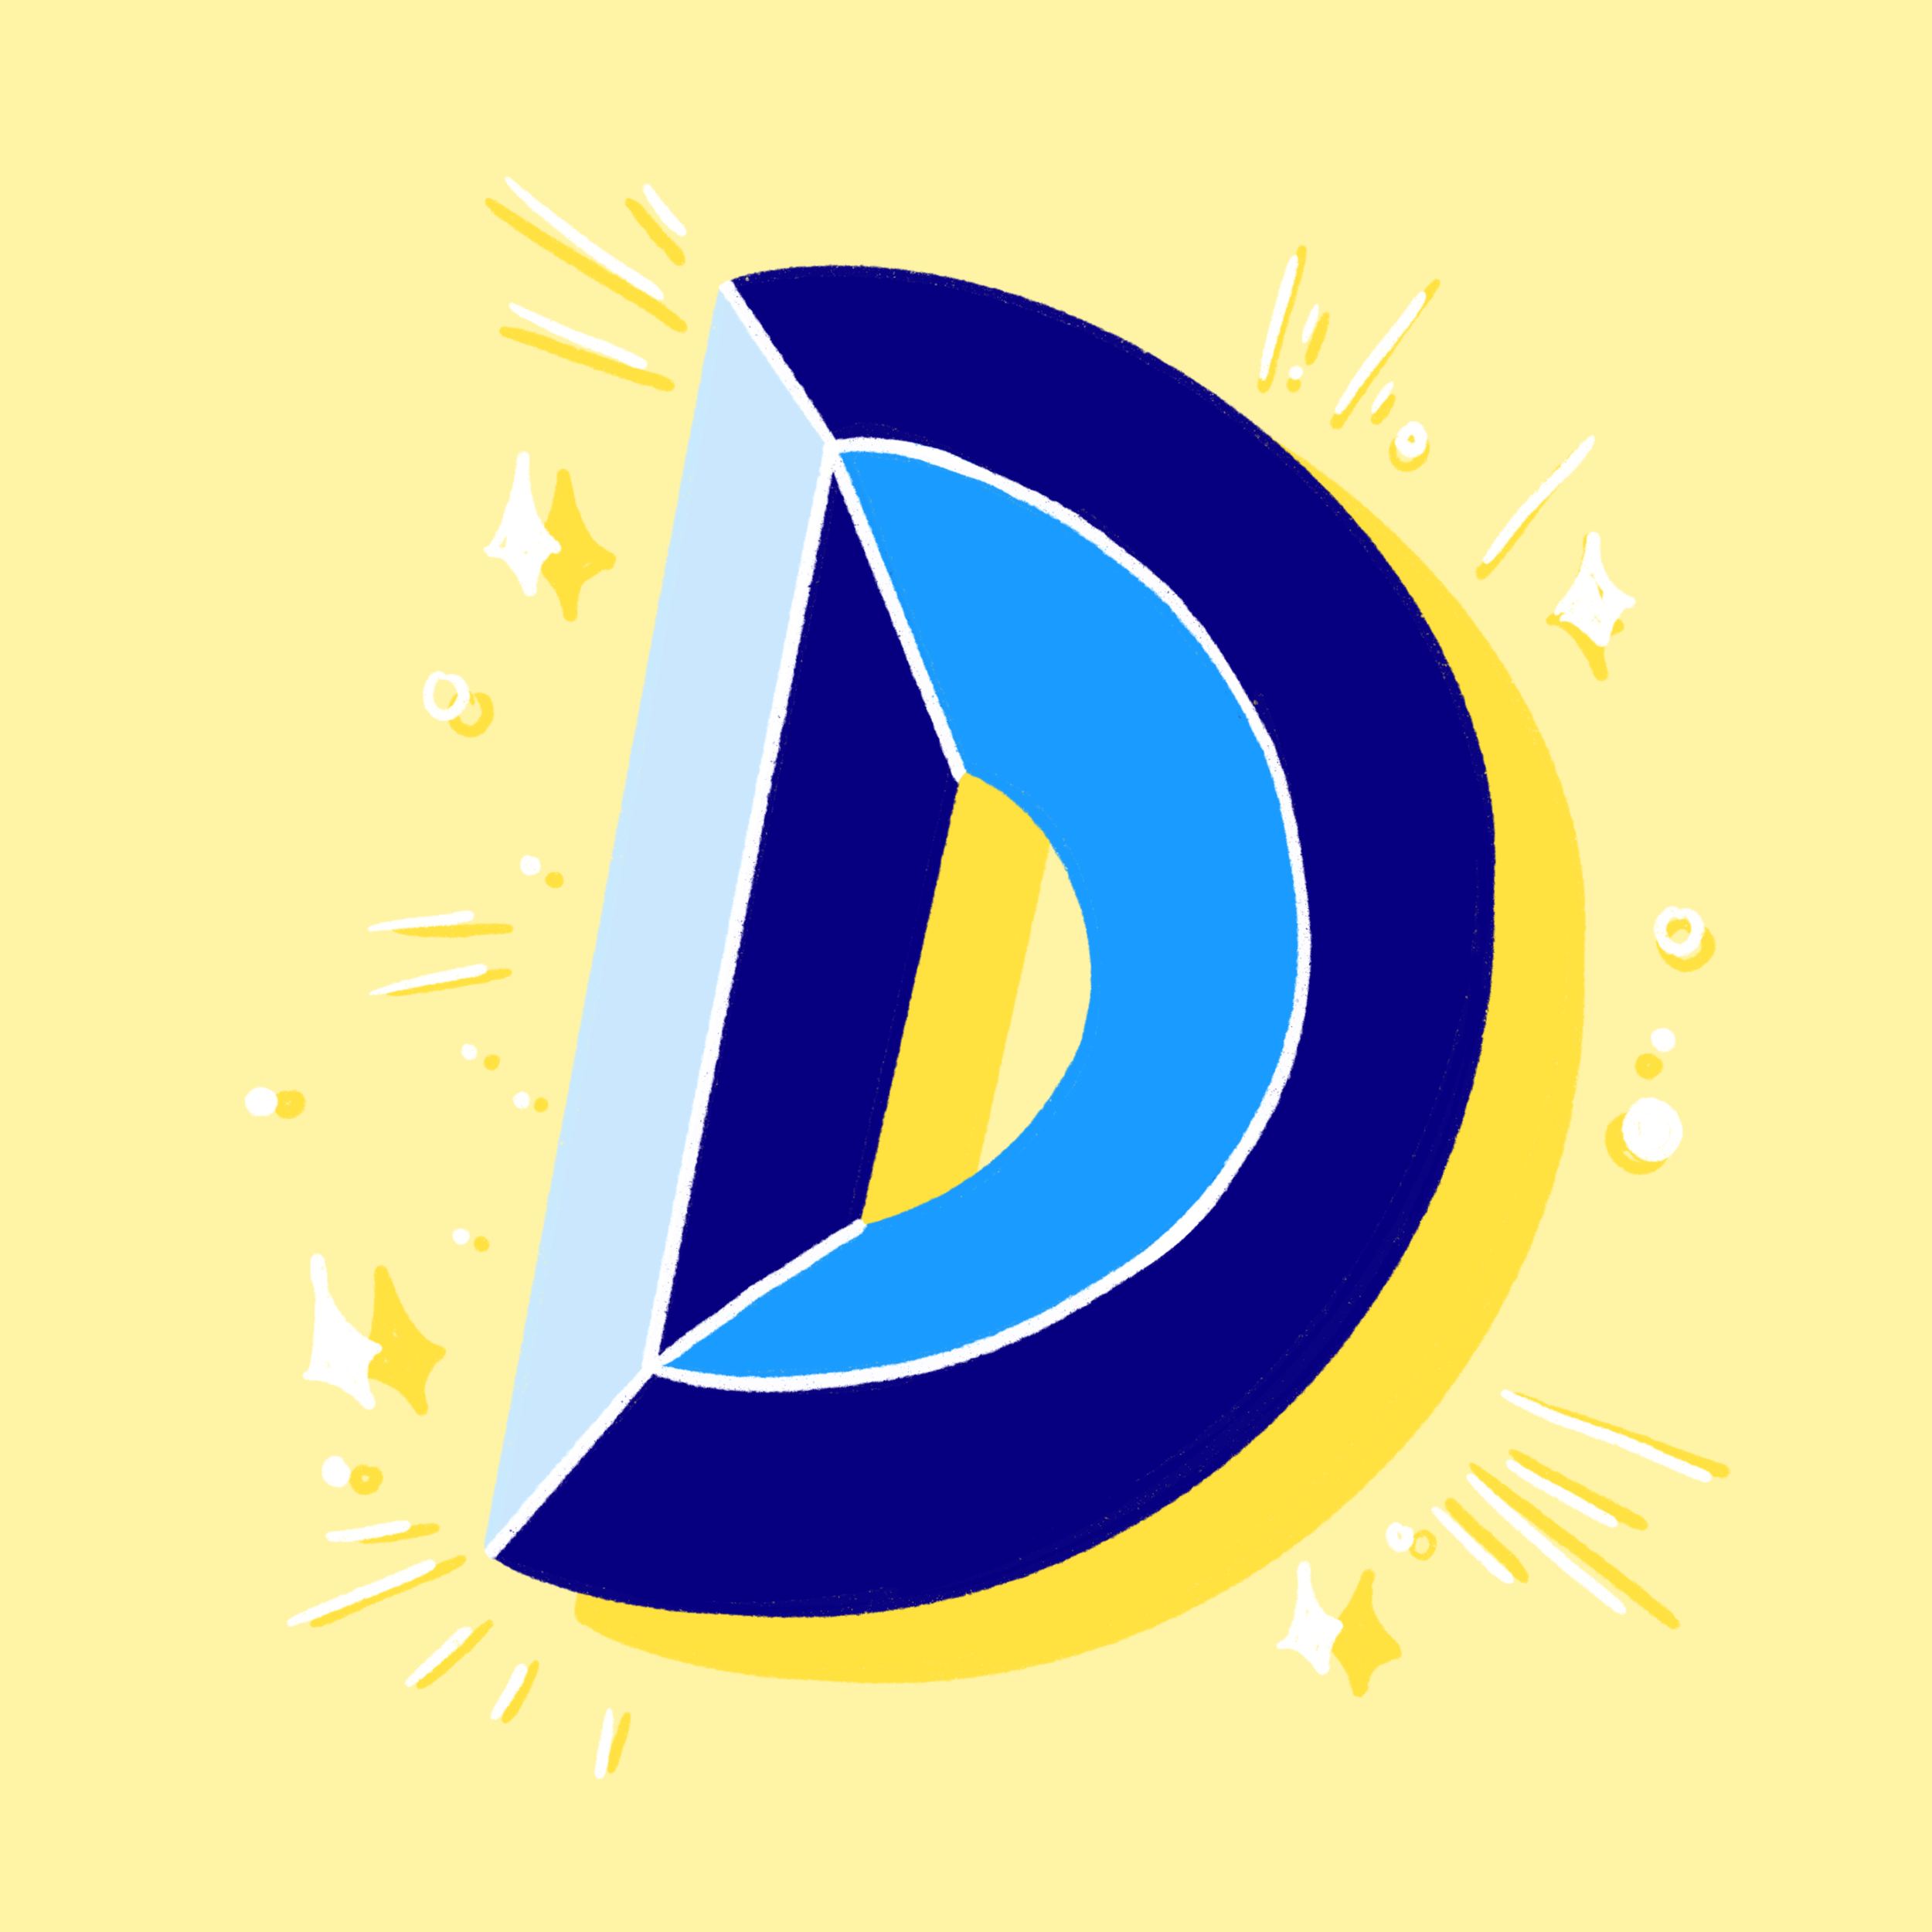 36days_d.png